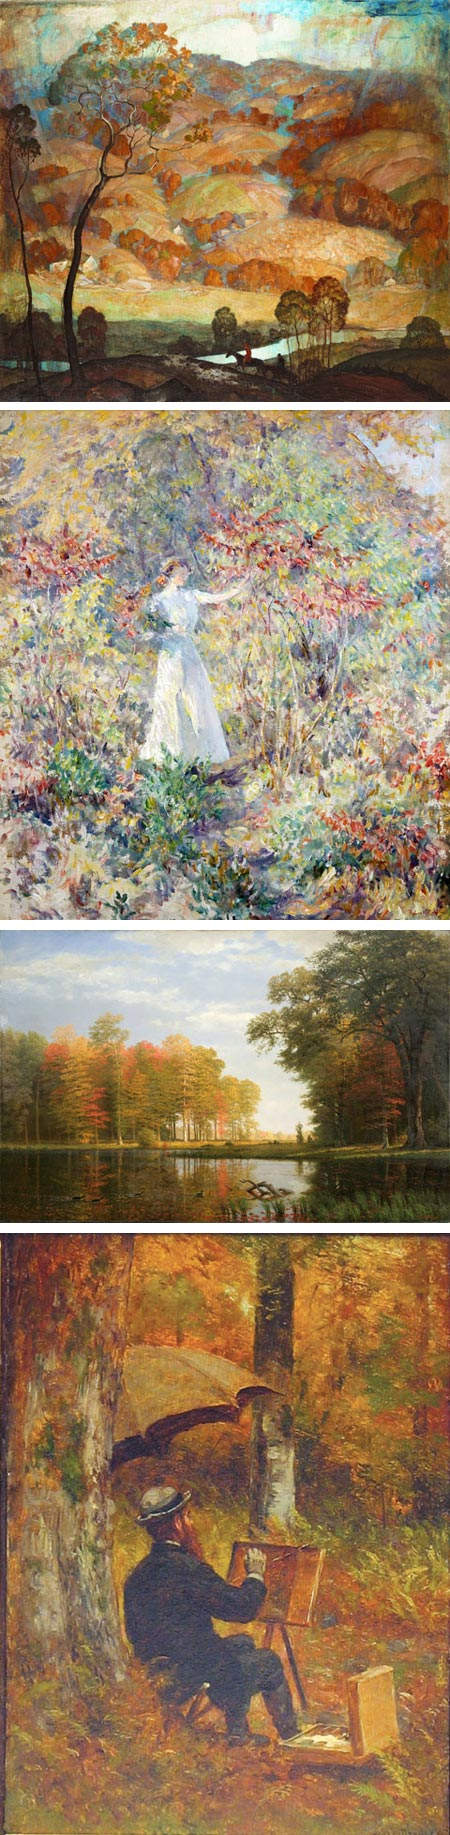 Paintbox Leaves: Autumnal Inspiration from Cole to Wyeth: N.C. Wyeth, Robert Reid, Albert Bierstadt, Thomas Worthington Whittredge